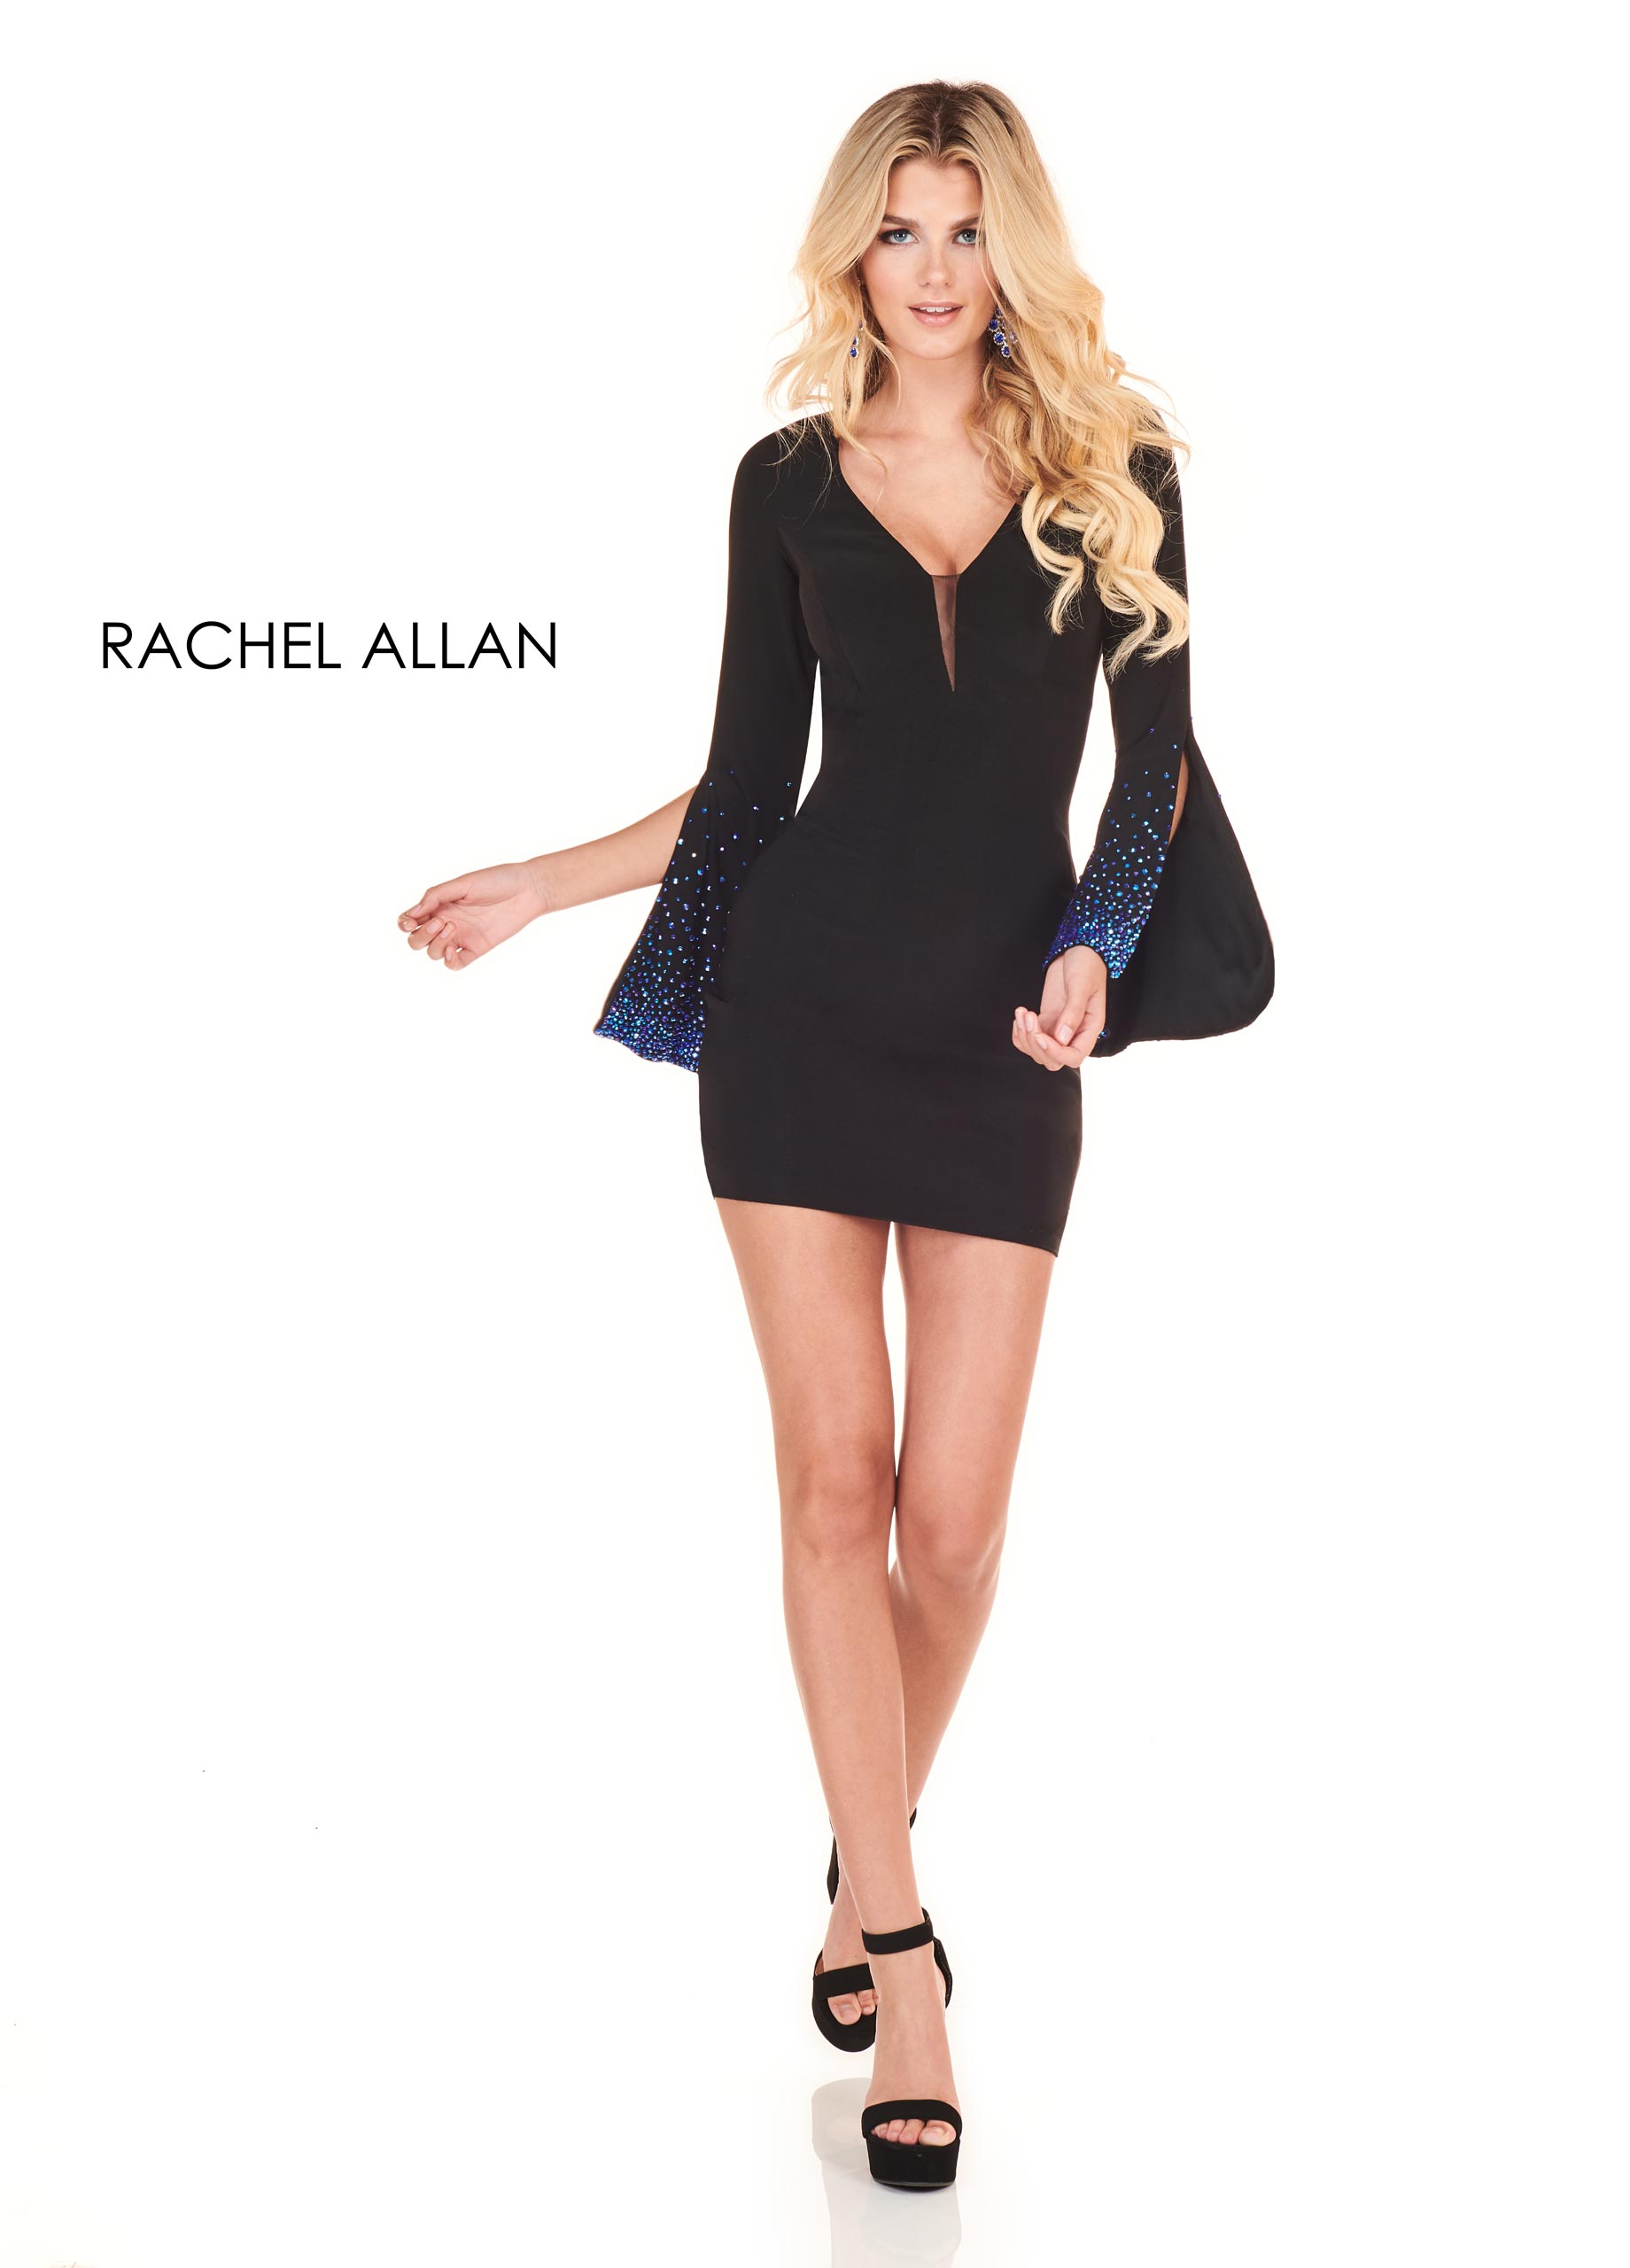 V-Neck Fitted Mini Homecoming Dresses in Black Color